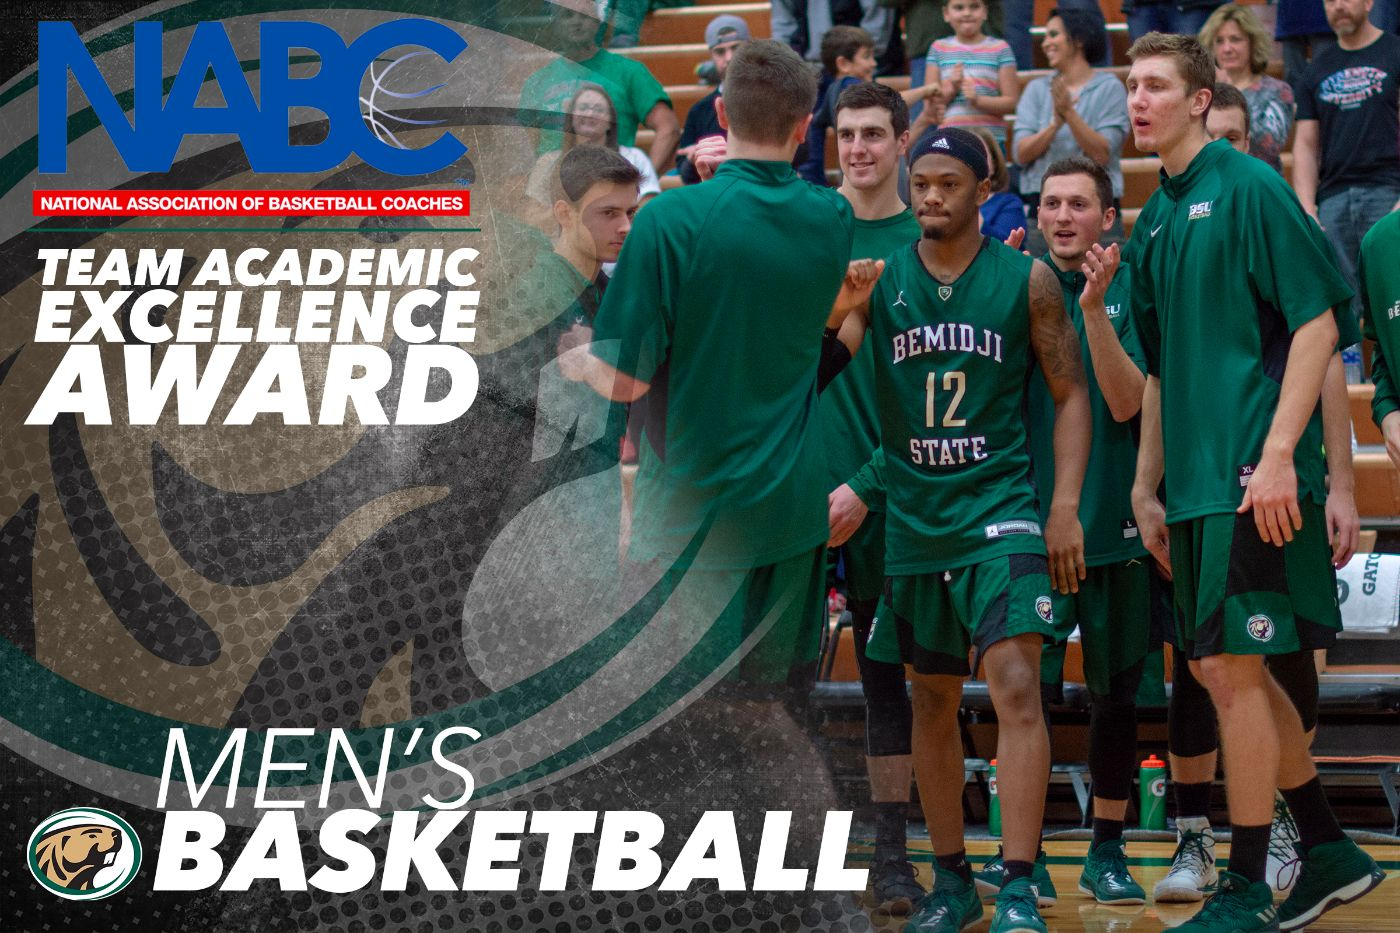 BSU earns first NABC Team Academic Excellence Award in program history